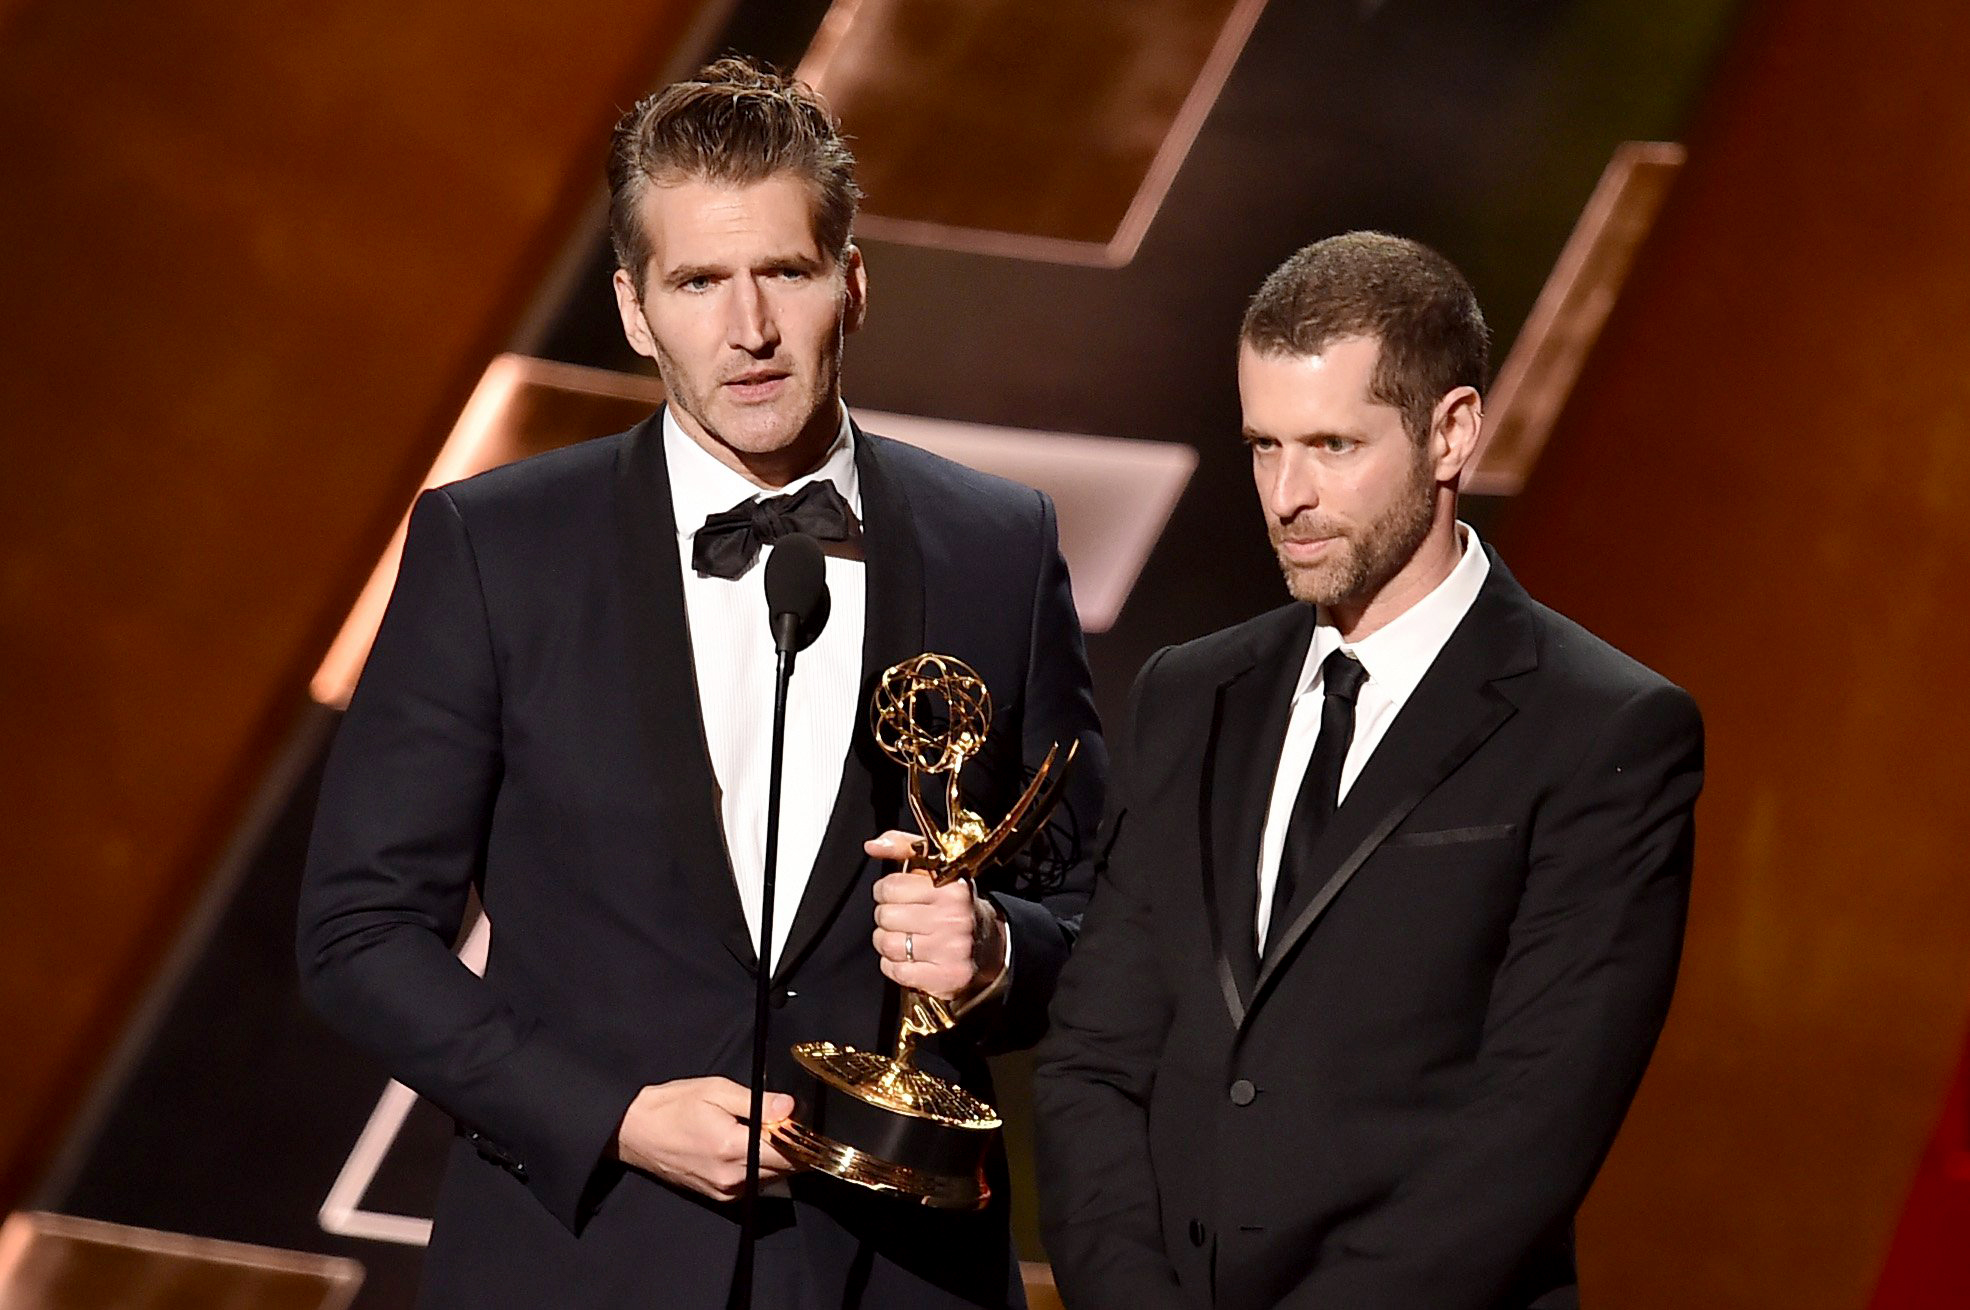 Showrunners David Benioff and D.B. Weiss accept writing award at 2015 Emmy Awards (Photo by Kevin Winter/Getty Images)